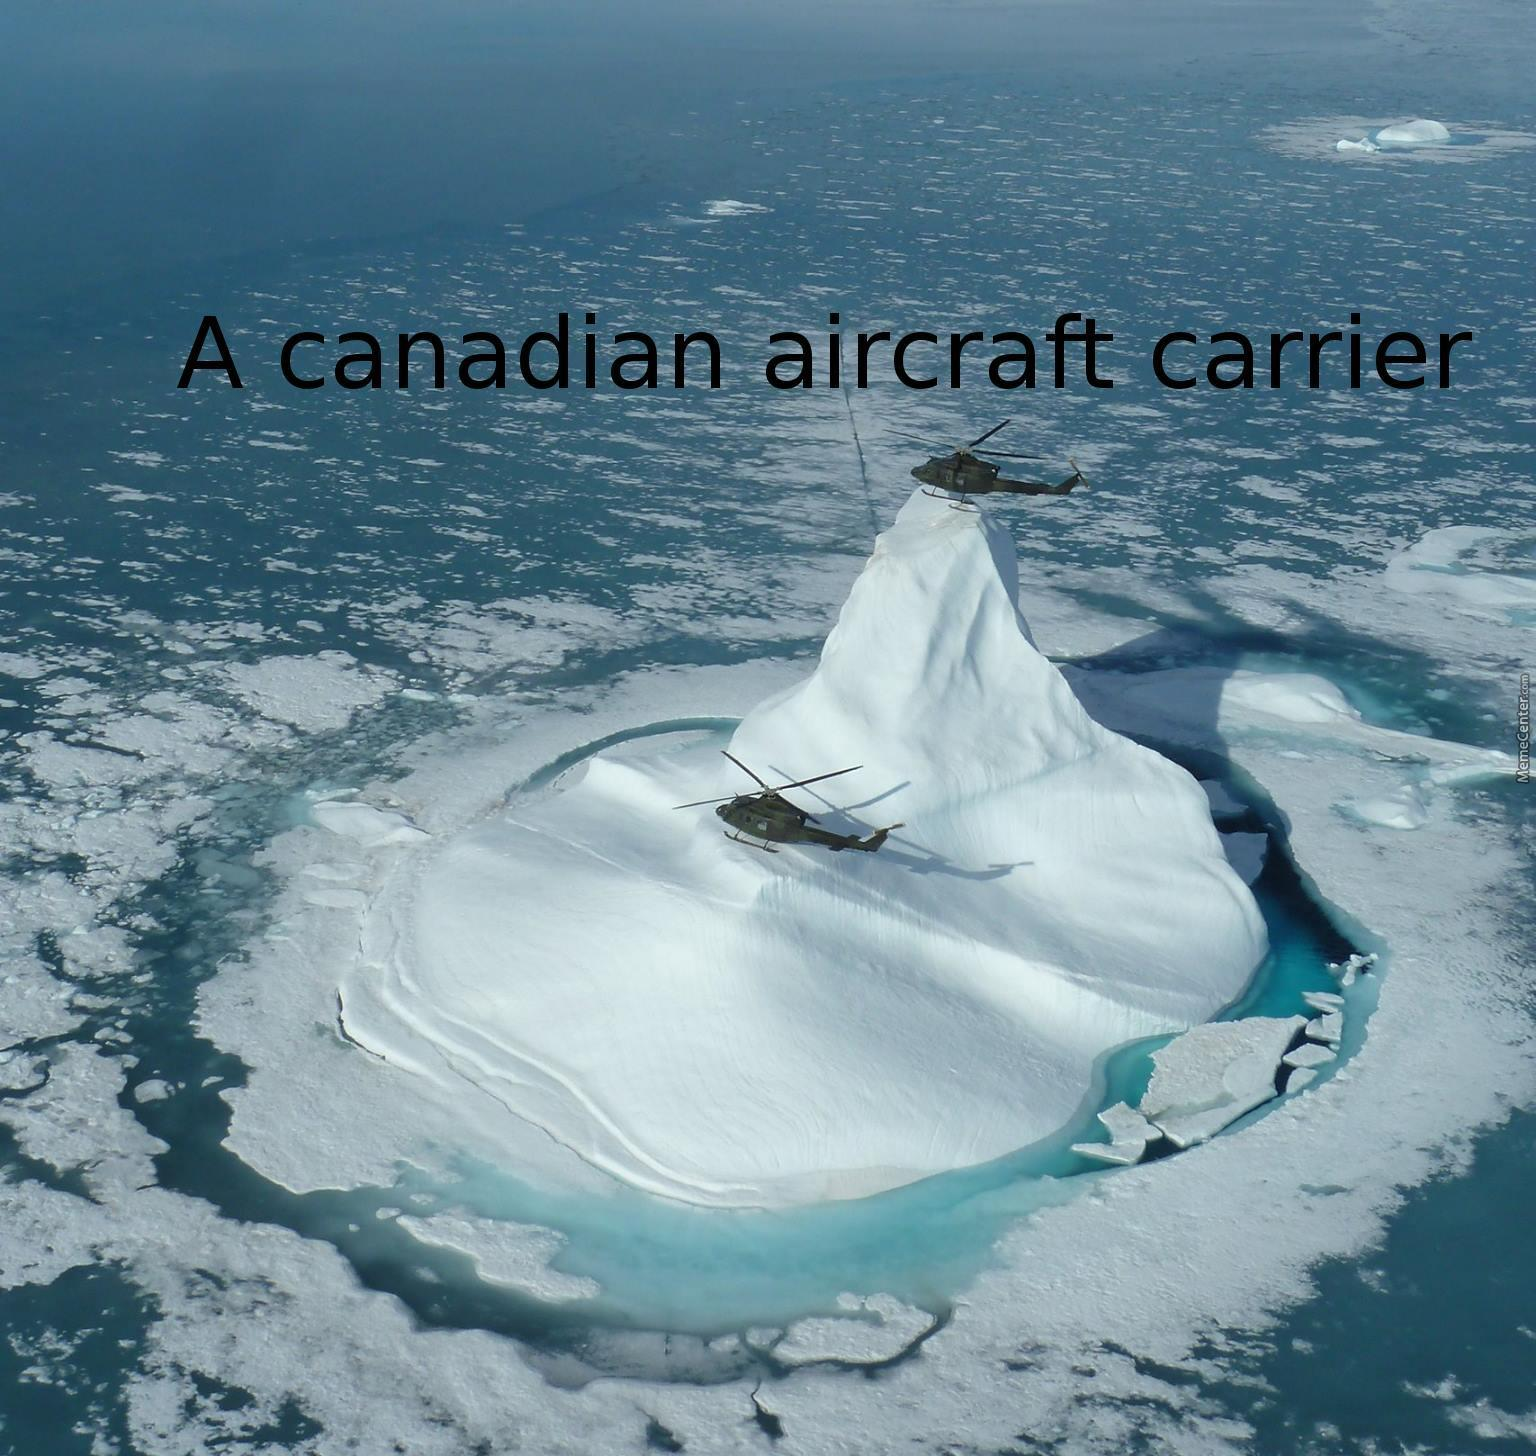 canada rc with Global Warming And The Canadian Forces Are At Odds These Days on C54C47 further Electric crackerbox together with Fichier Blason RC Strasbourg 1976 in addition Global Warming And The Canadian Forces Are At Odds These Days as well Index.